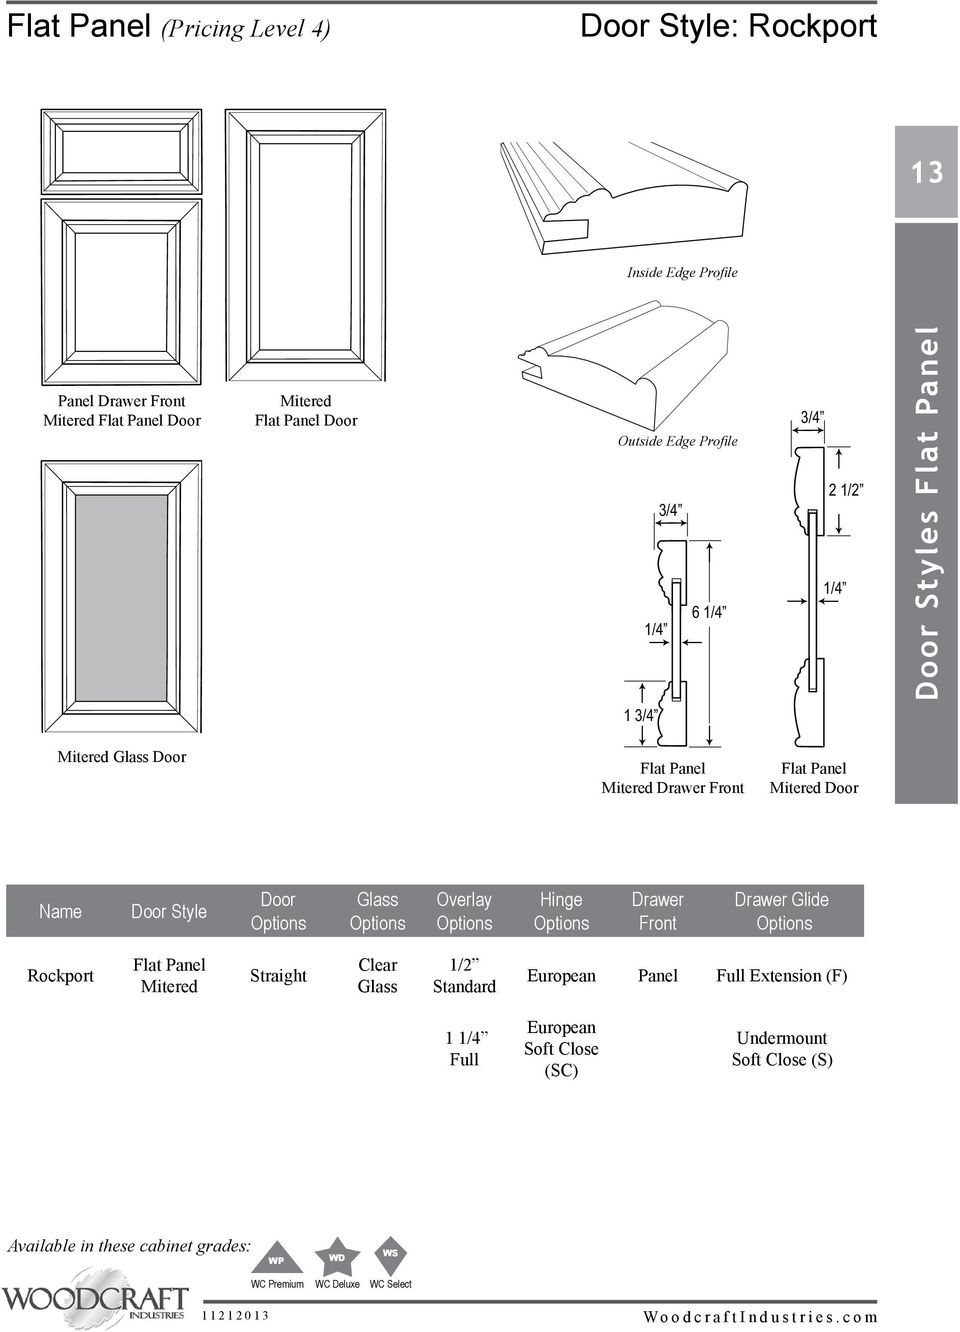 Door Name Door Style Door Glass Overlay Hinge Drawer Front Drawer Glide Rockport Flat Panel Mitered Straight Clear Glass 1/2 Standard European Panel Full Extension (F) 1 1/4 Full